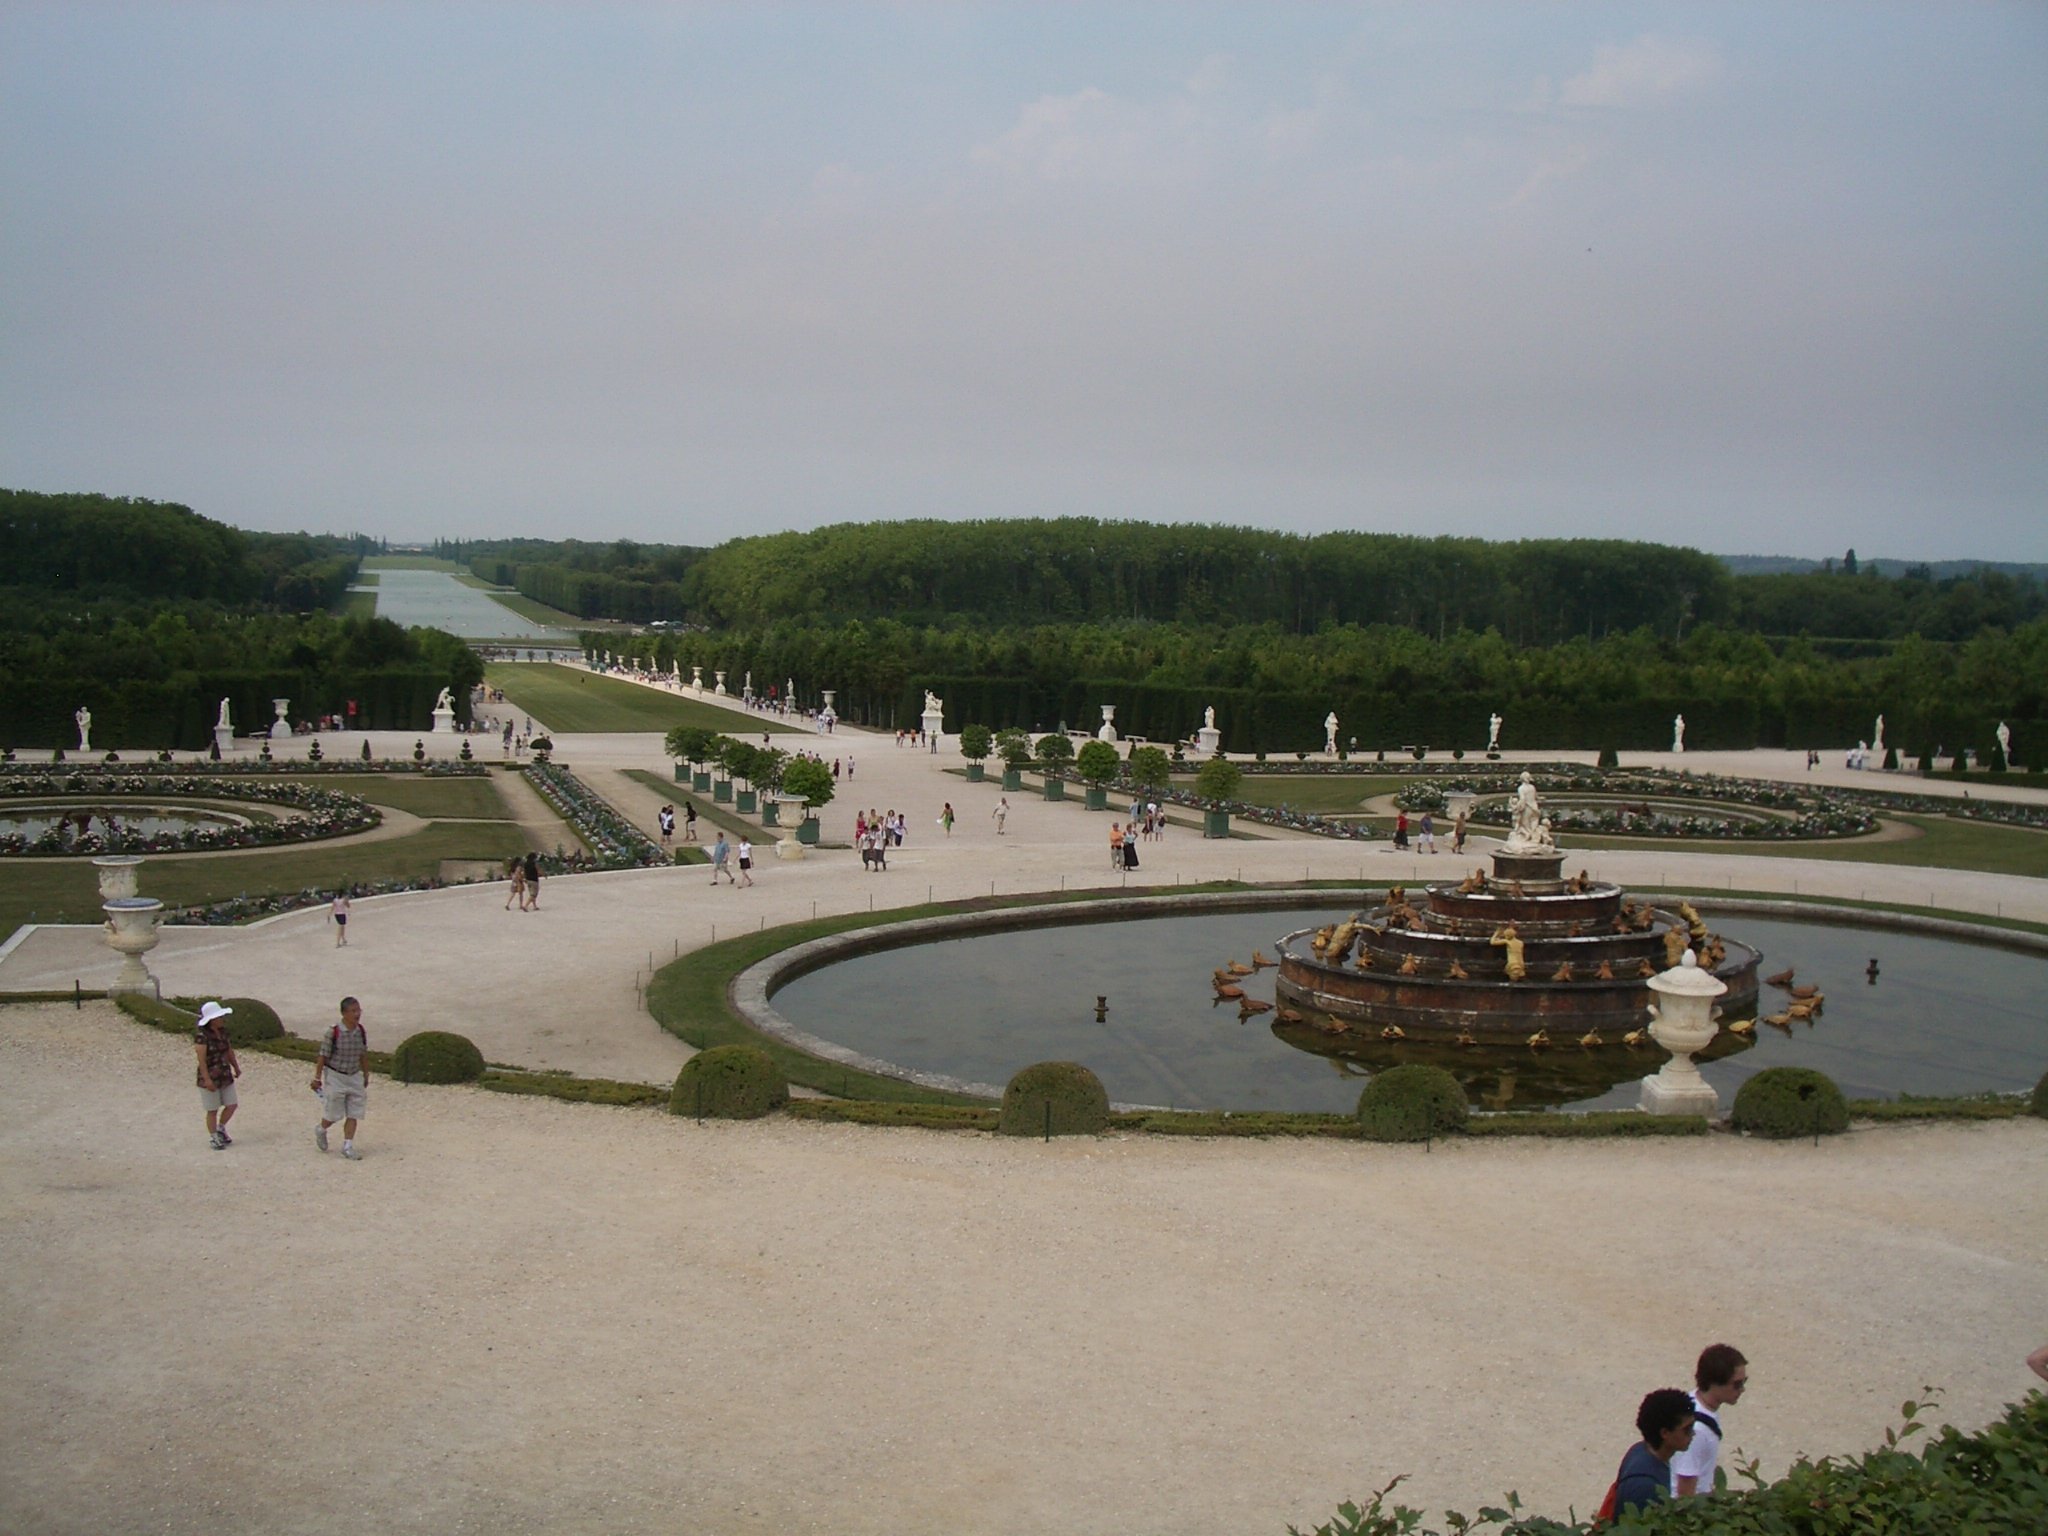 https://upload.wikimedia.org/wikipedia/commons/7/72/Palace_of_Versailles_Gardens_2.JPG